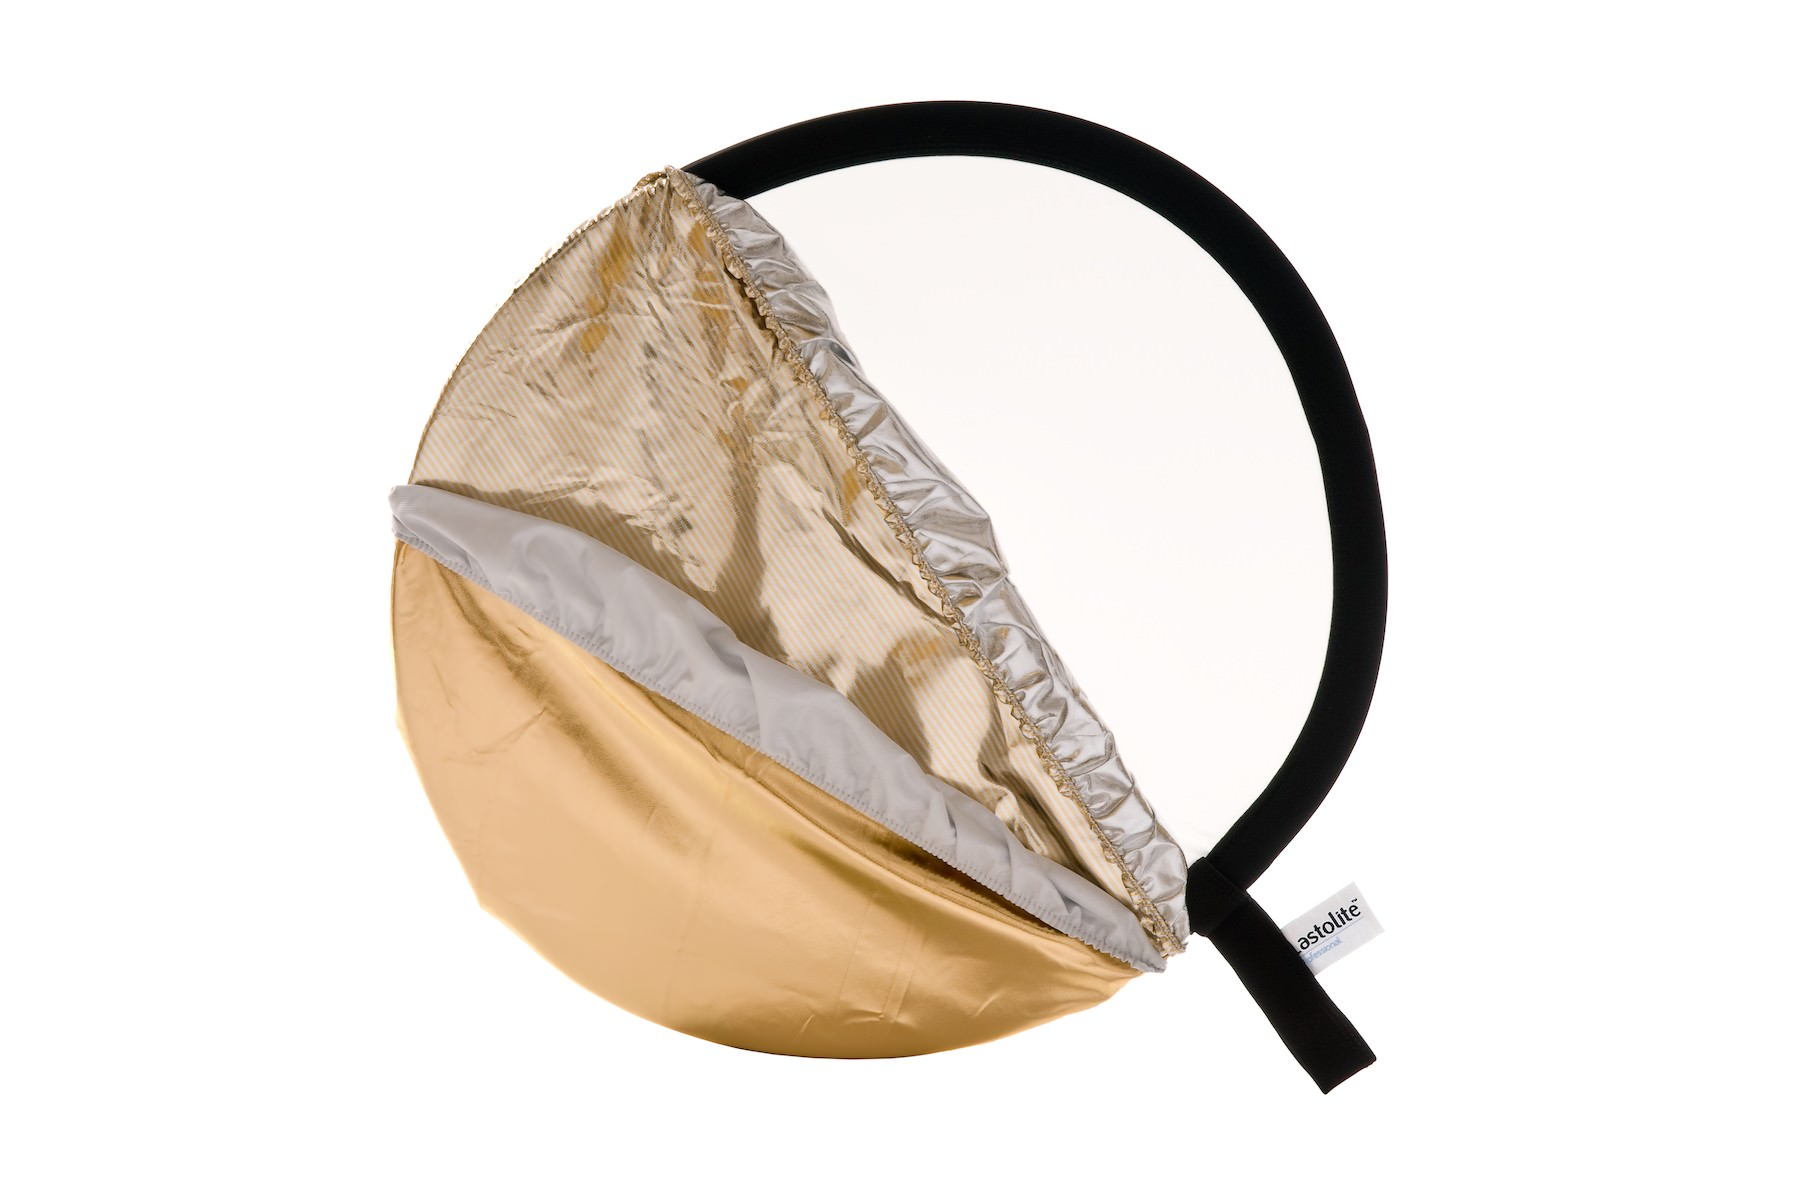 Lastolite Collapsable Reflector 5-in-1 50cm